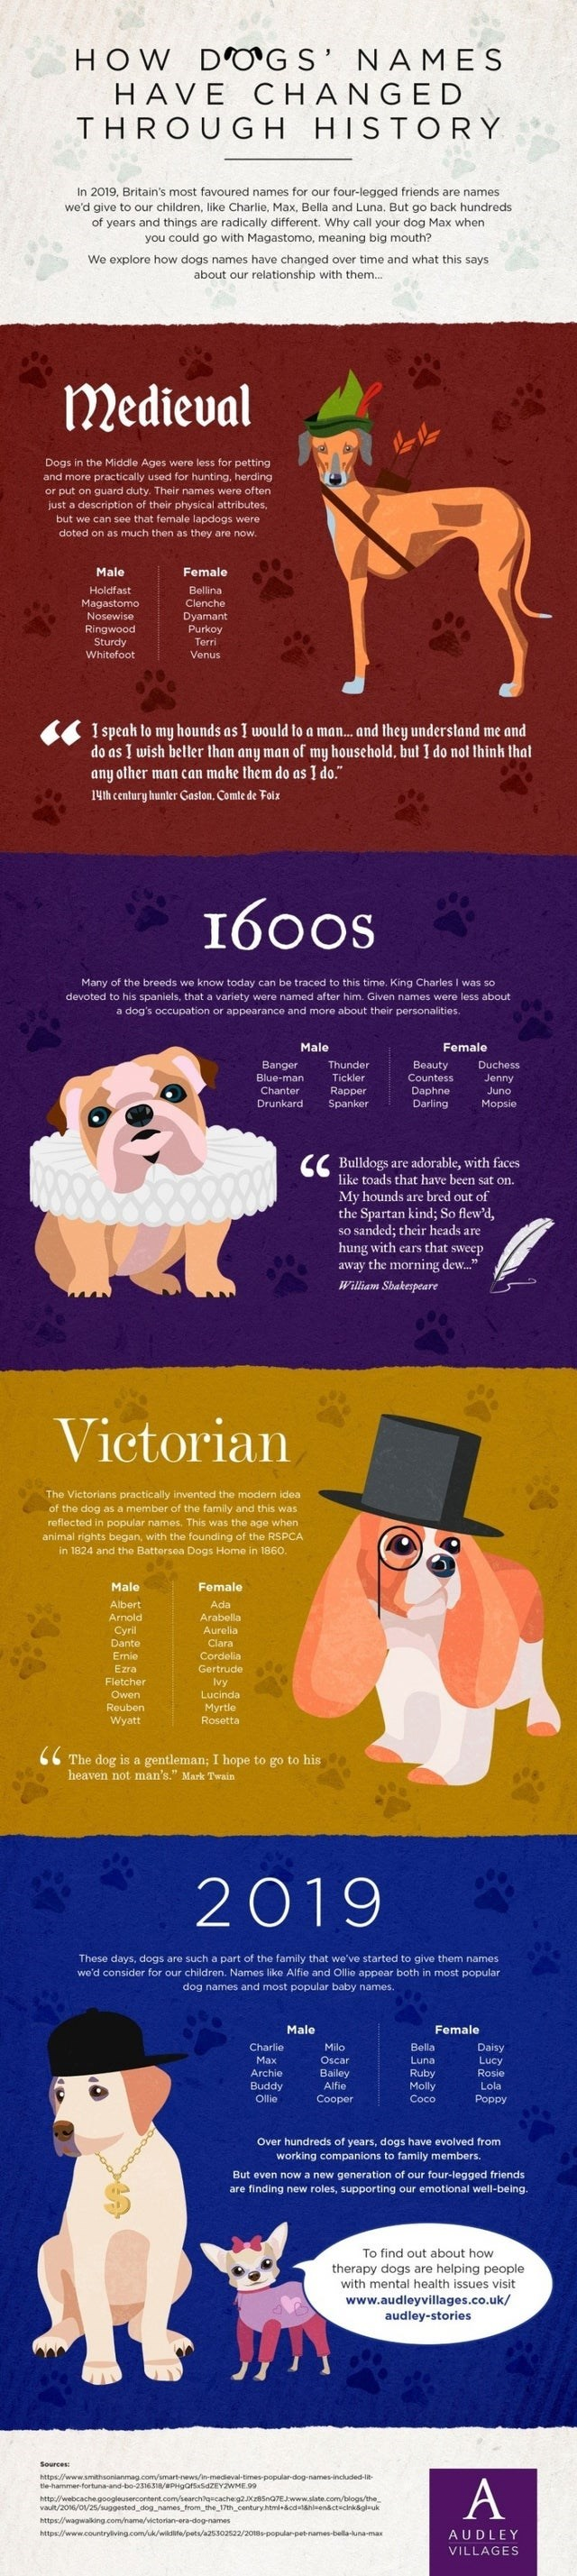 top ten cool guides of the day | Packaged goods - D'OG S' NAMES HAVE CHANGED THROUGH HISTORY 2019, Britain's most favoured names our four-legged friends are names give our children, like Charlie, Max, Bella and Luna. But go back hundreds years and things are radically different. Why call dog Max could go with Magastomo, meaning big mouth explore dogs names have changed over time and this says about our relationship with them. Medieval Dogs Middle Ages were less petting and more practically used